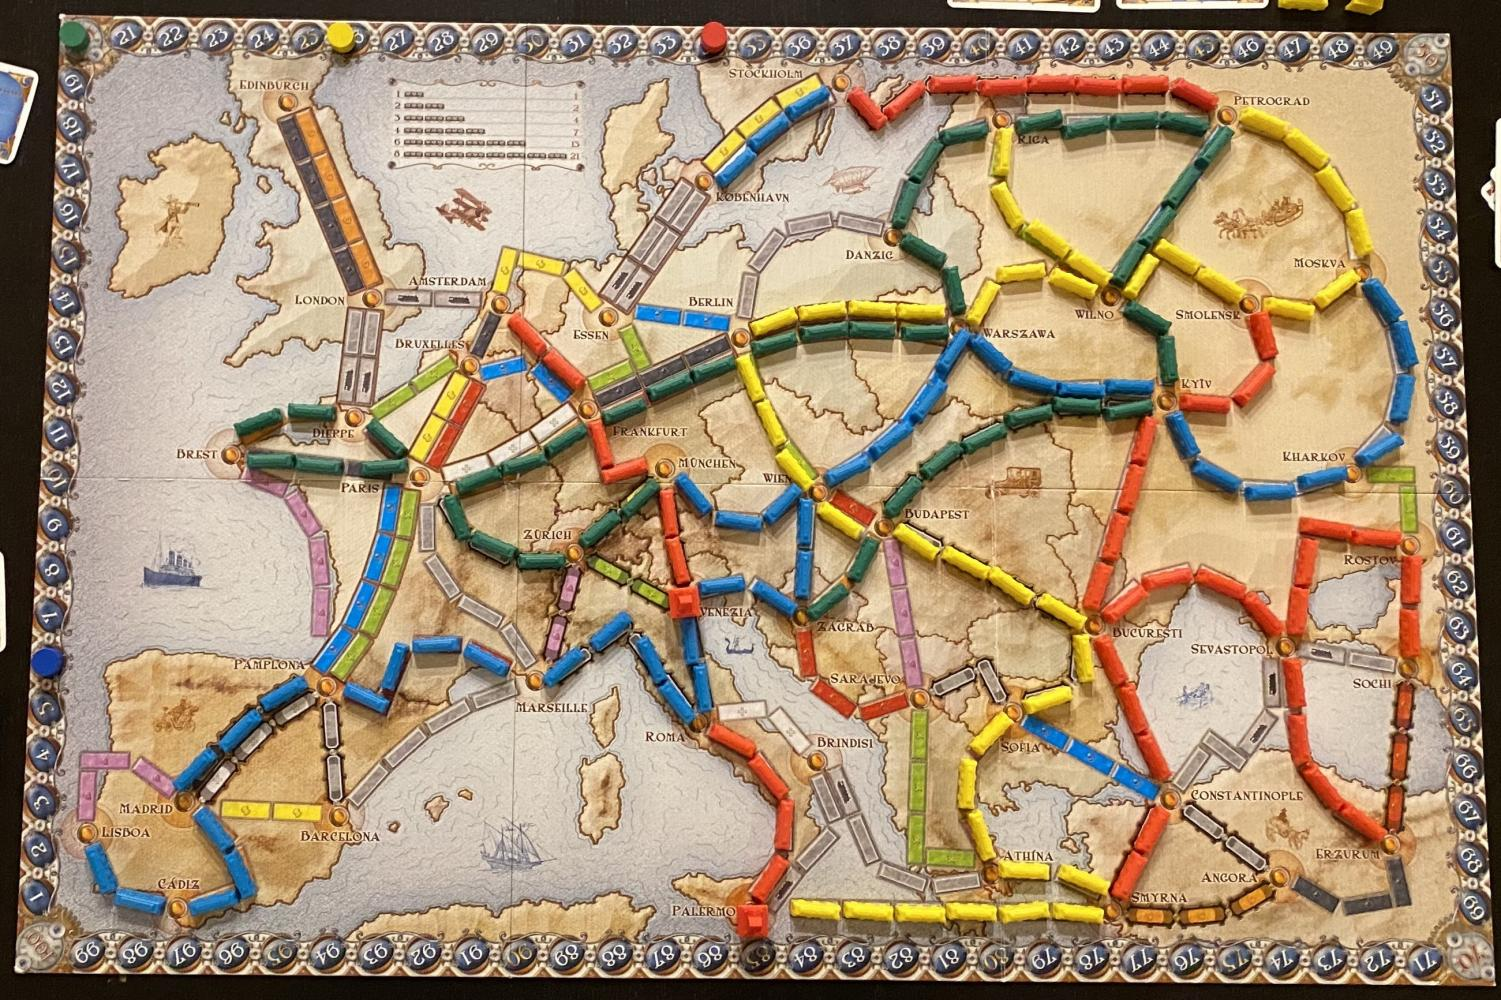 How to play Ticket to Ride | Official Rules | UltraBoardGames